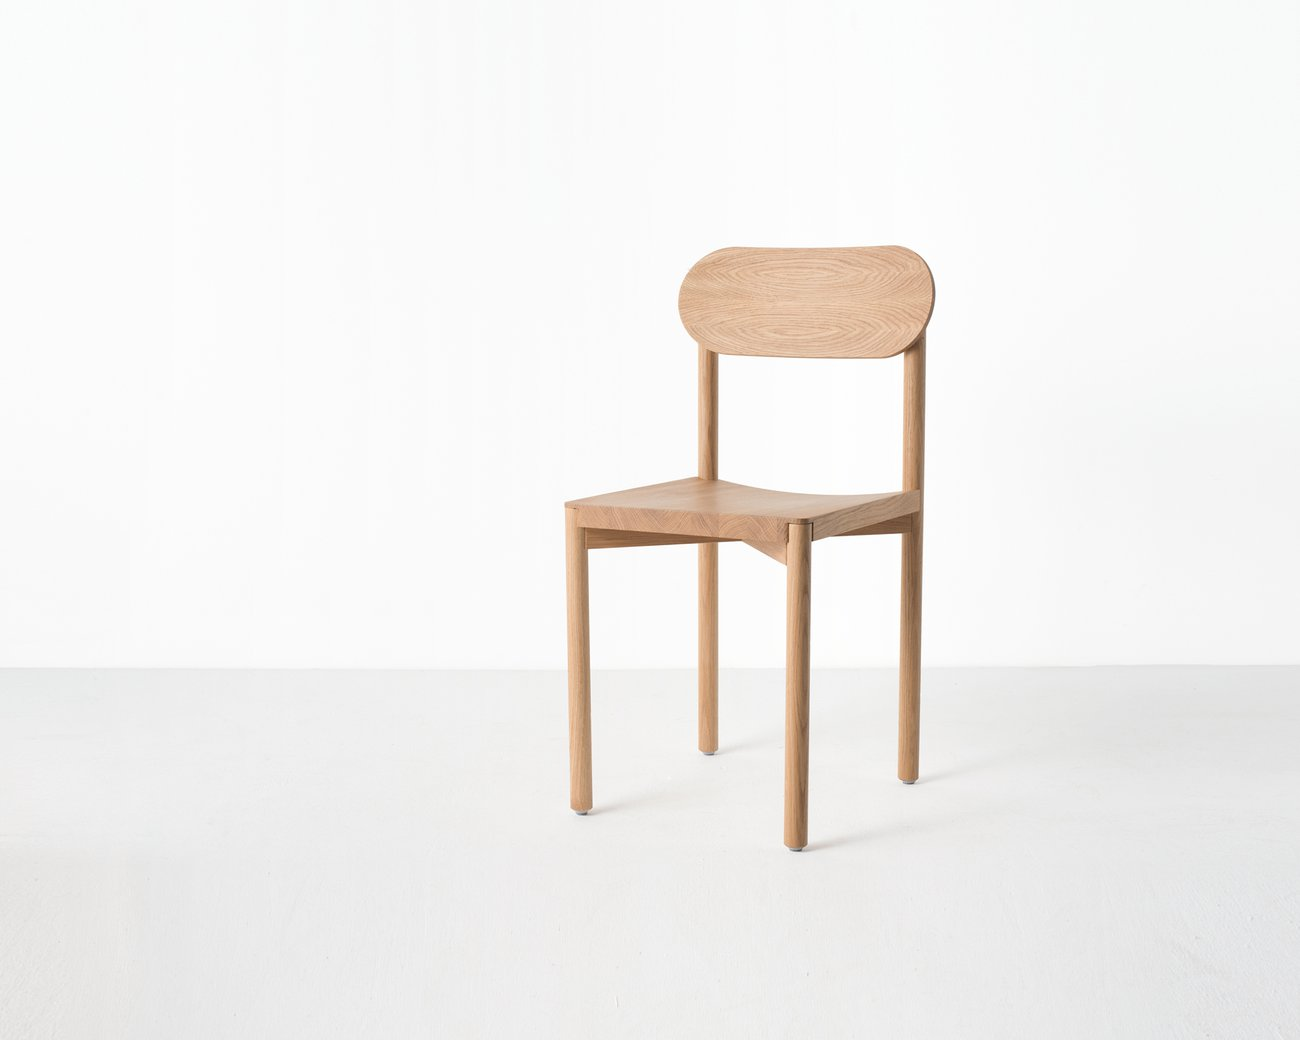 Image: uploads/2017_03/Resident-studio-chair-by-Jason-Whiteley-7.jpg